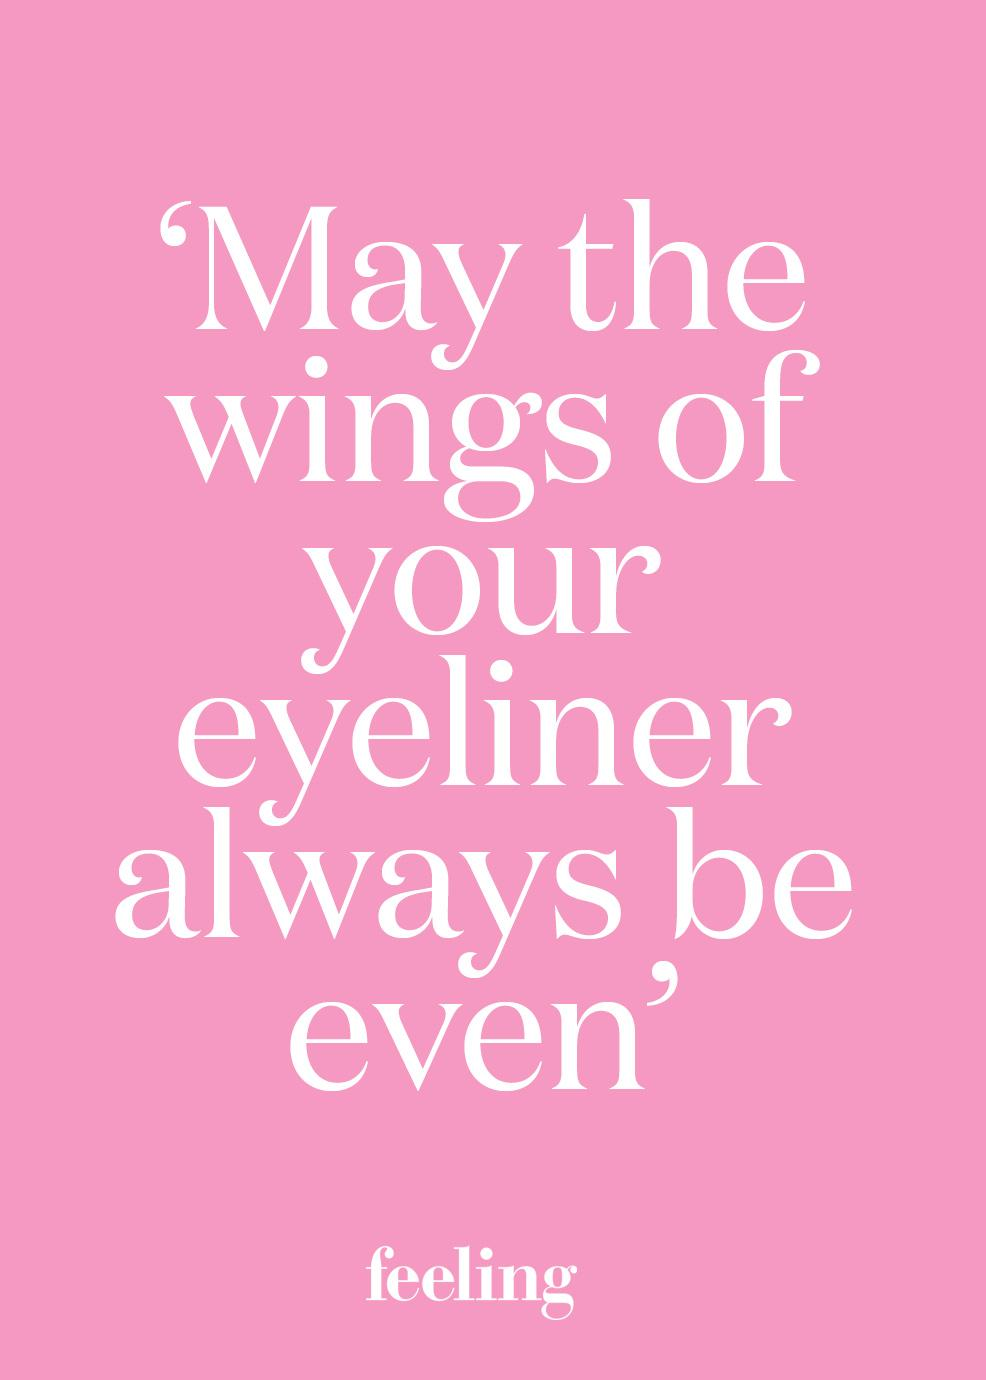 quote-winged-eyeliner